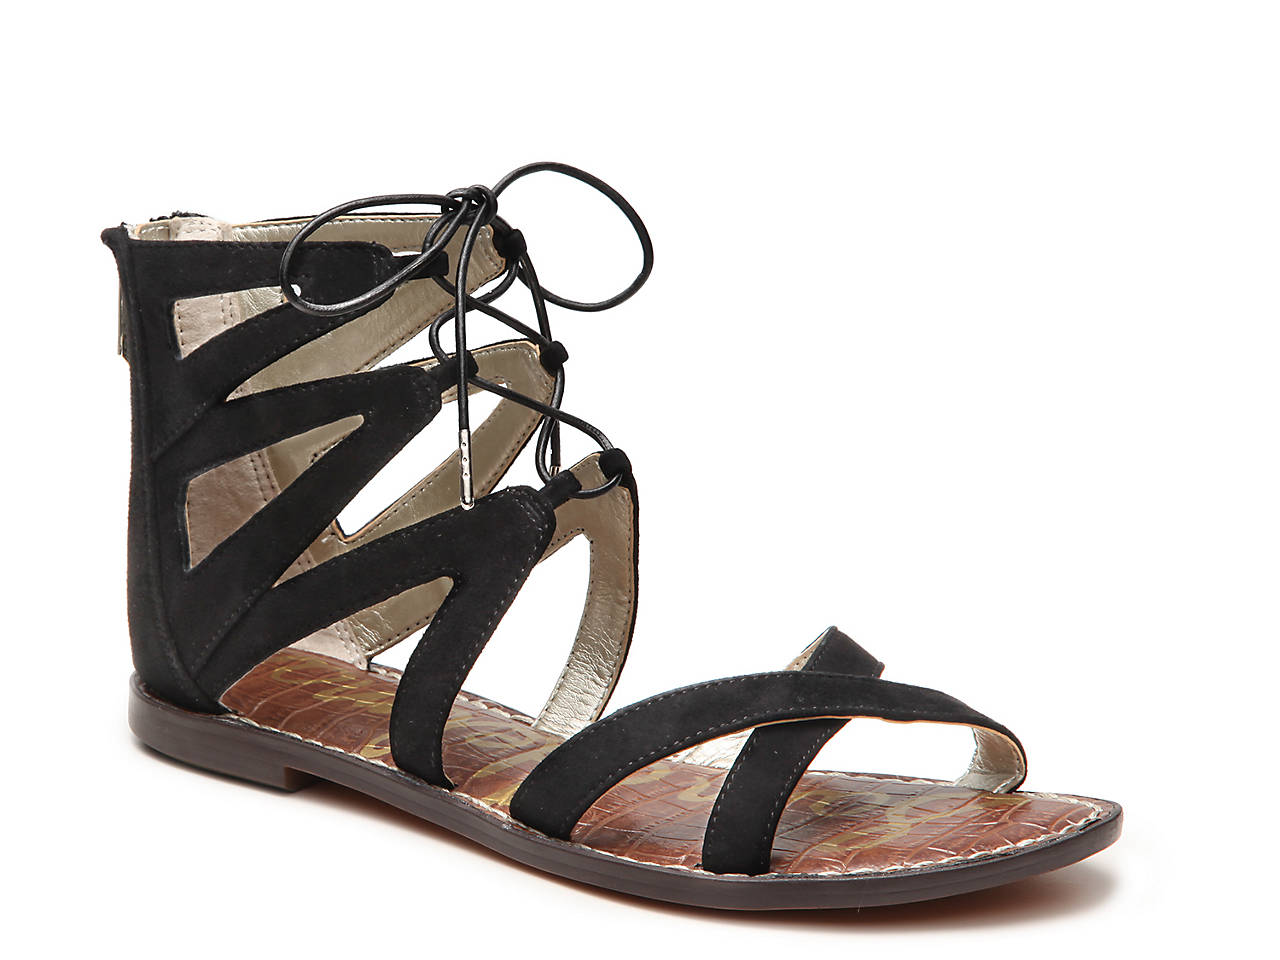 d6c506f7e678 Sam Edelman Katya Gladiator Sandal Women s Shoes